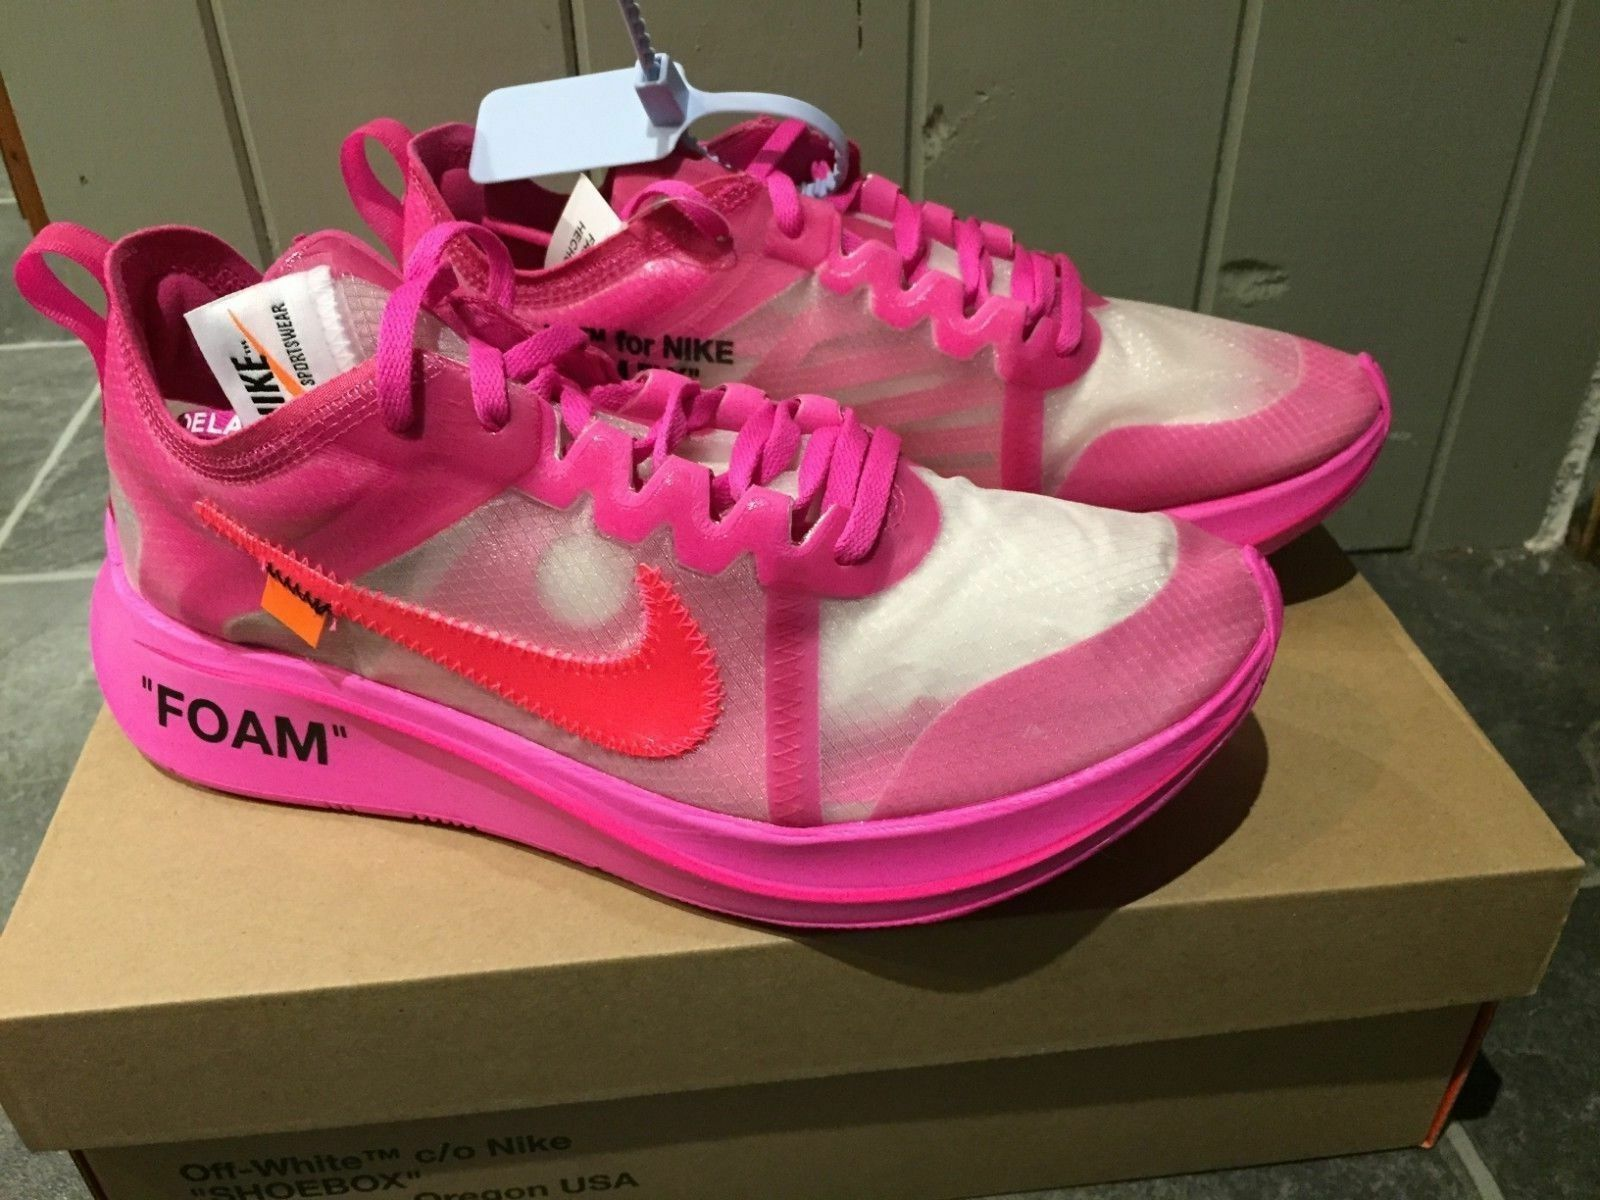 Off-White x Nike Zoom Fly SP 4 5.5 7.5 10 11 Tulip Pink AJ4588-600